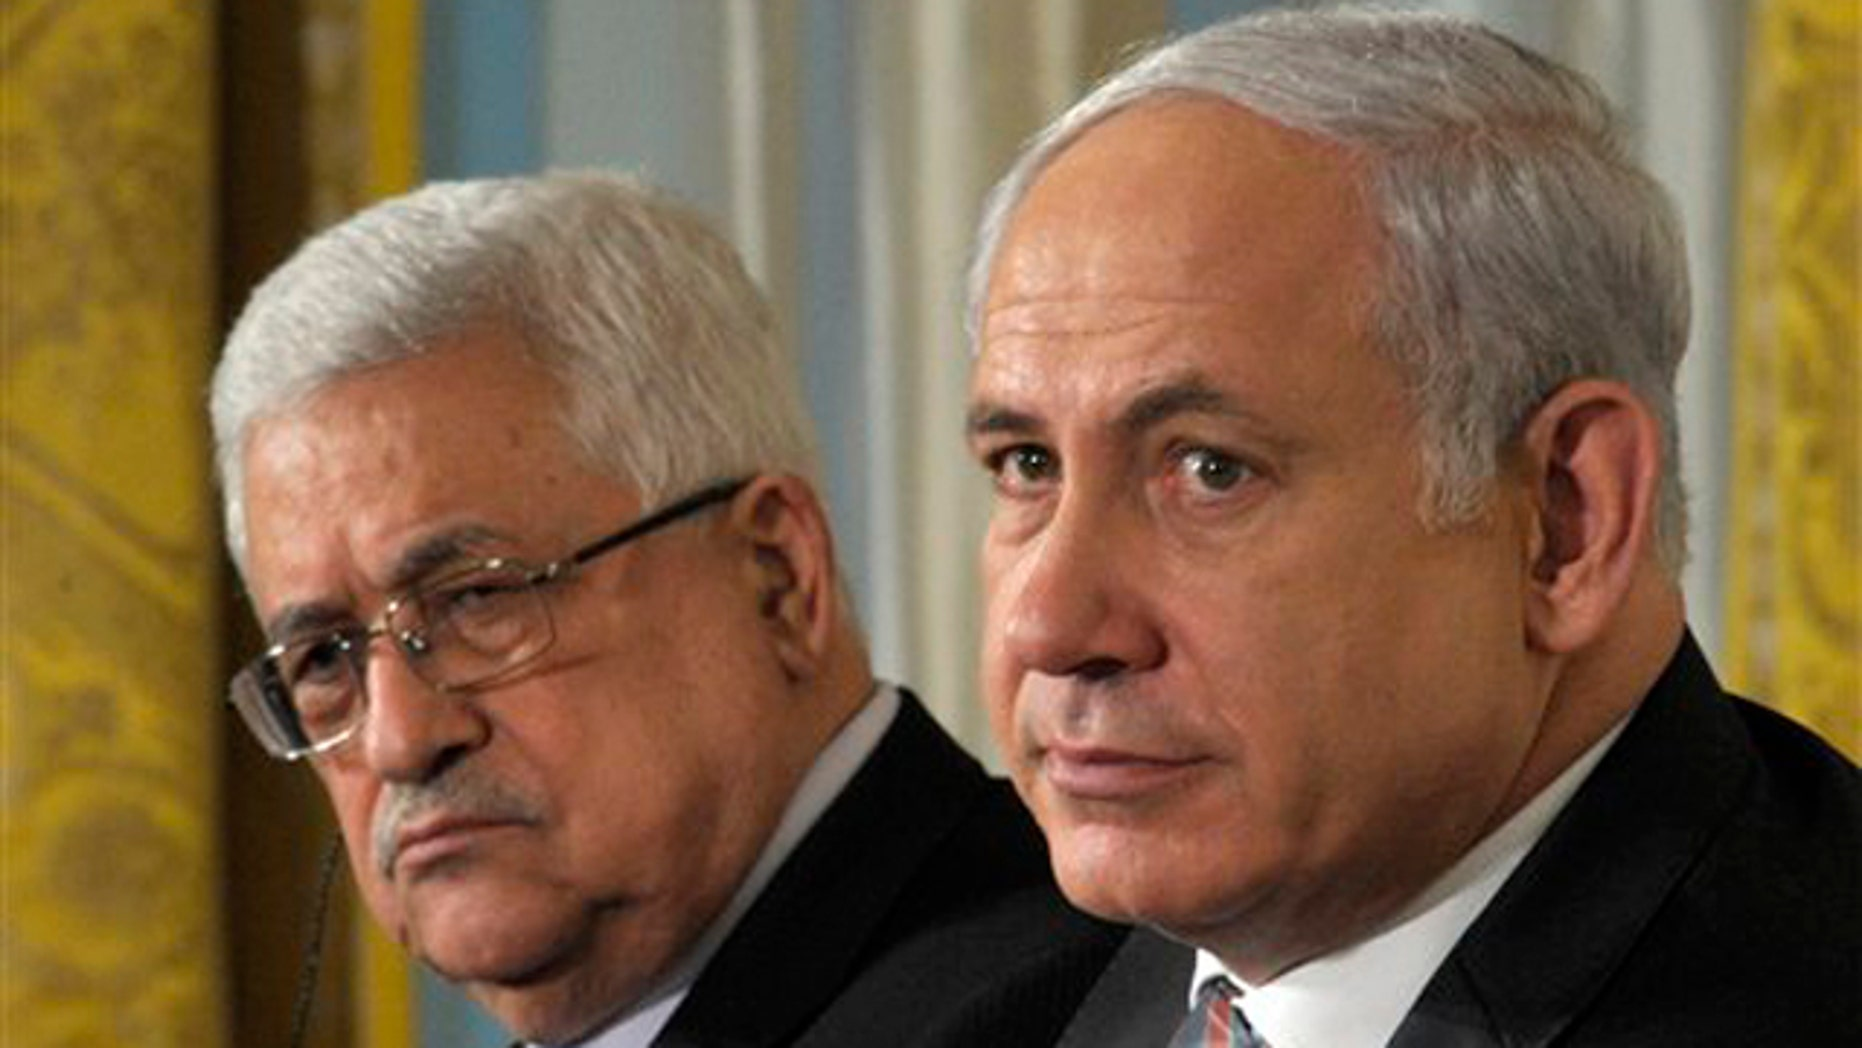 Sept. 1, 2010: Palestinian President Mahmoud Abbas, left, and Israel's Prime Minister Benjamin Netanyahu listen during remarks at the White House.